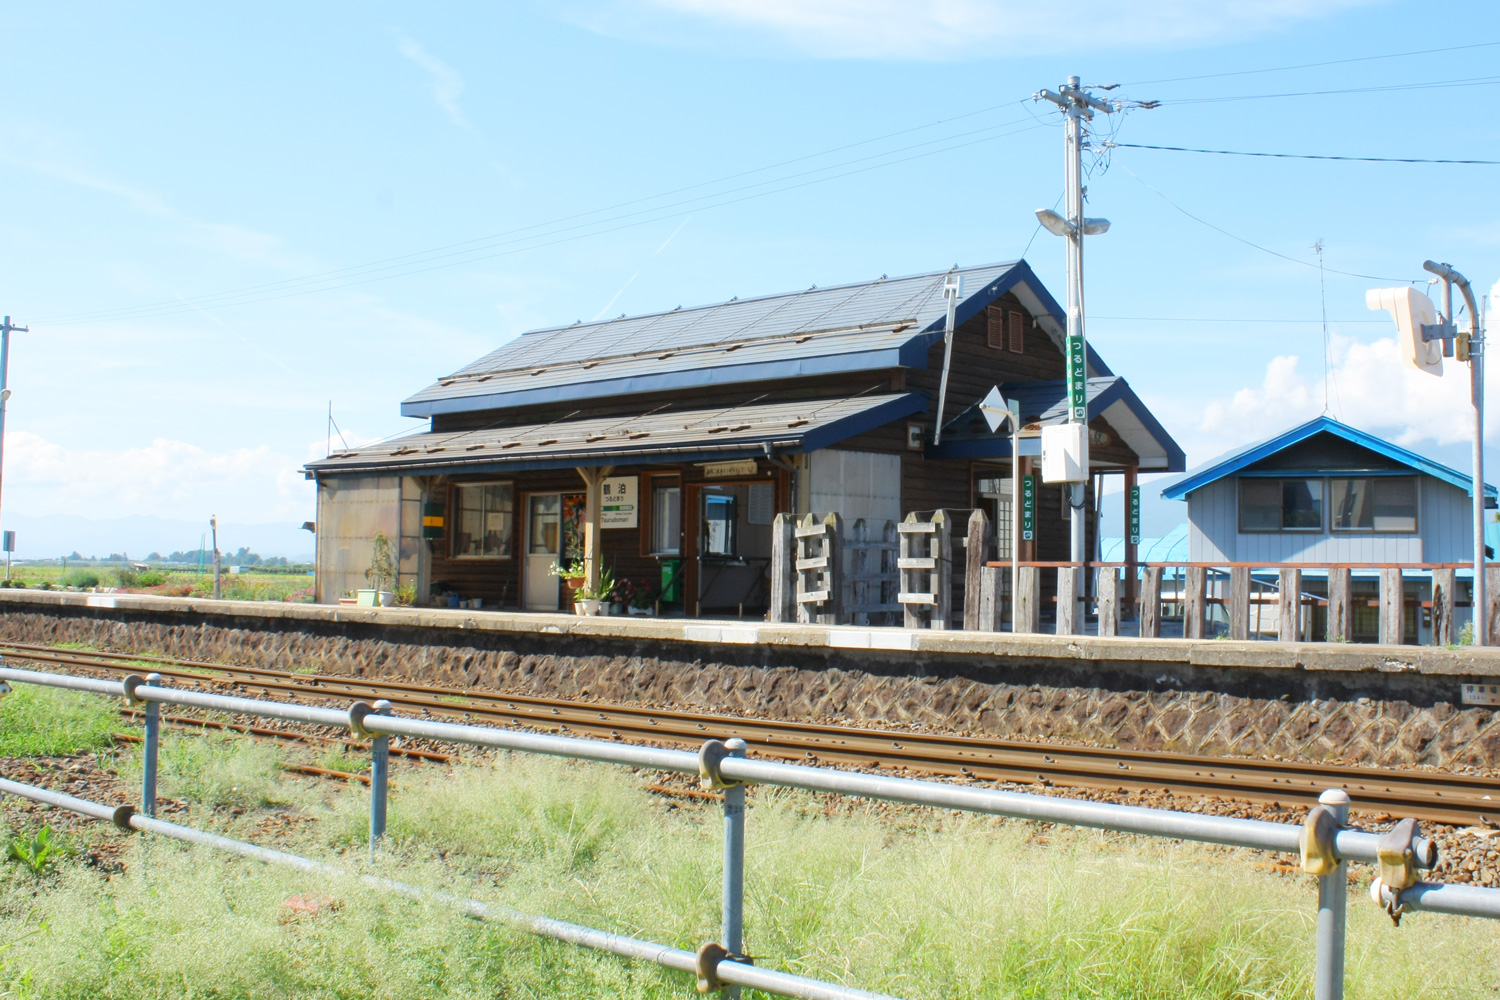 Classic wooden station building